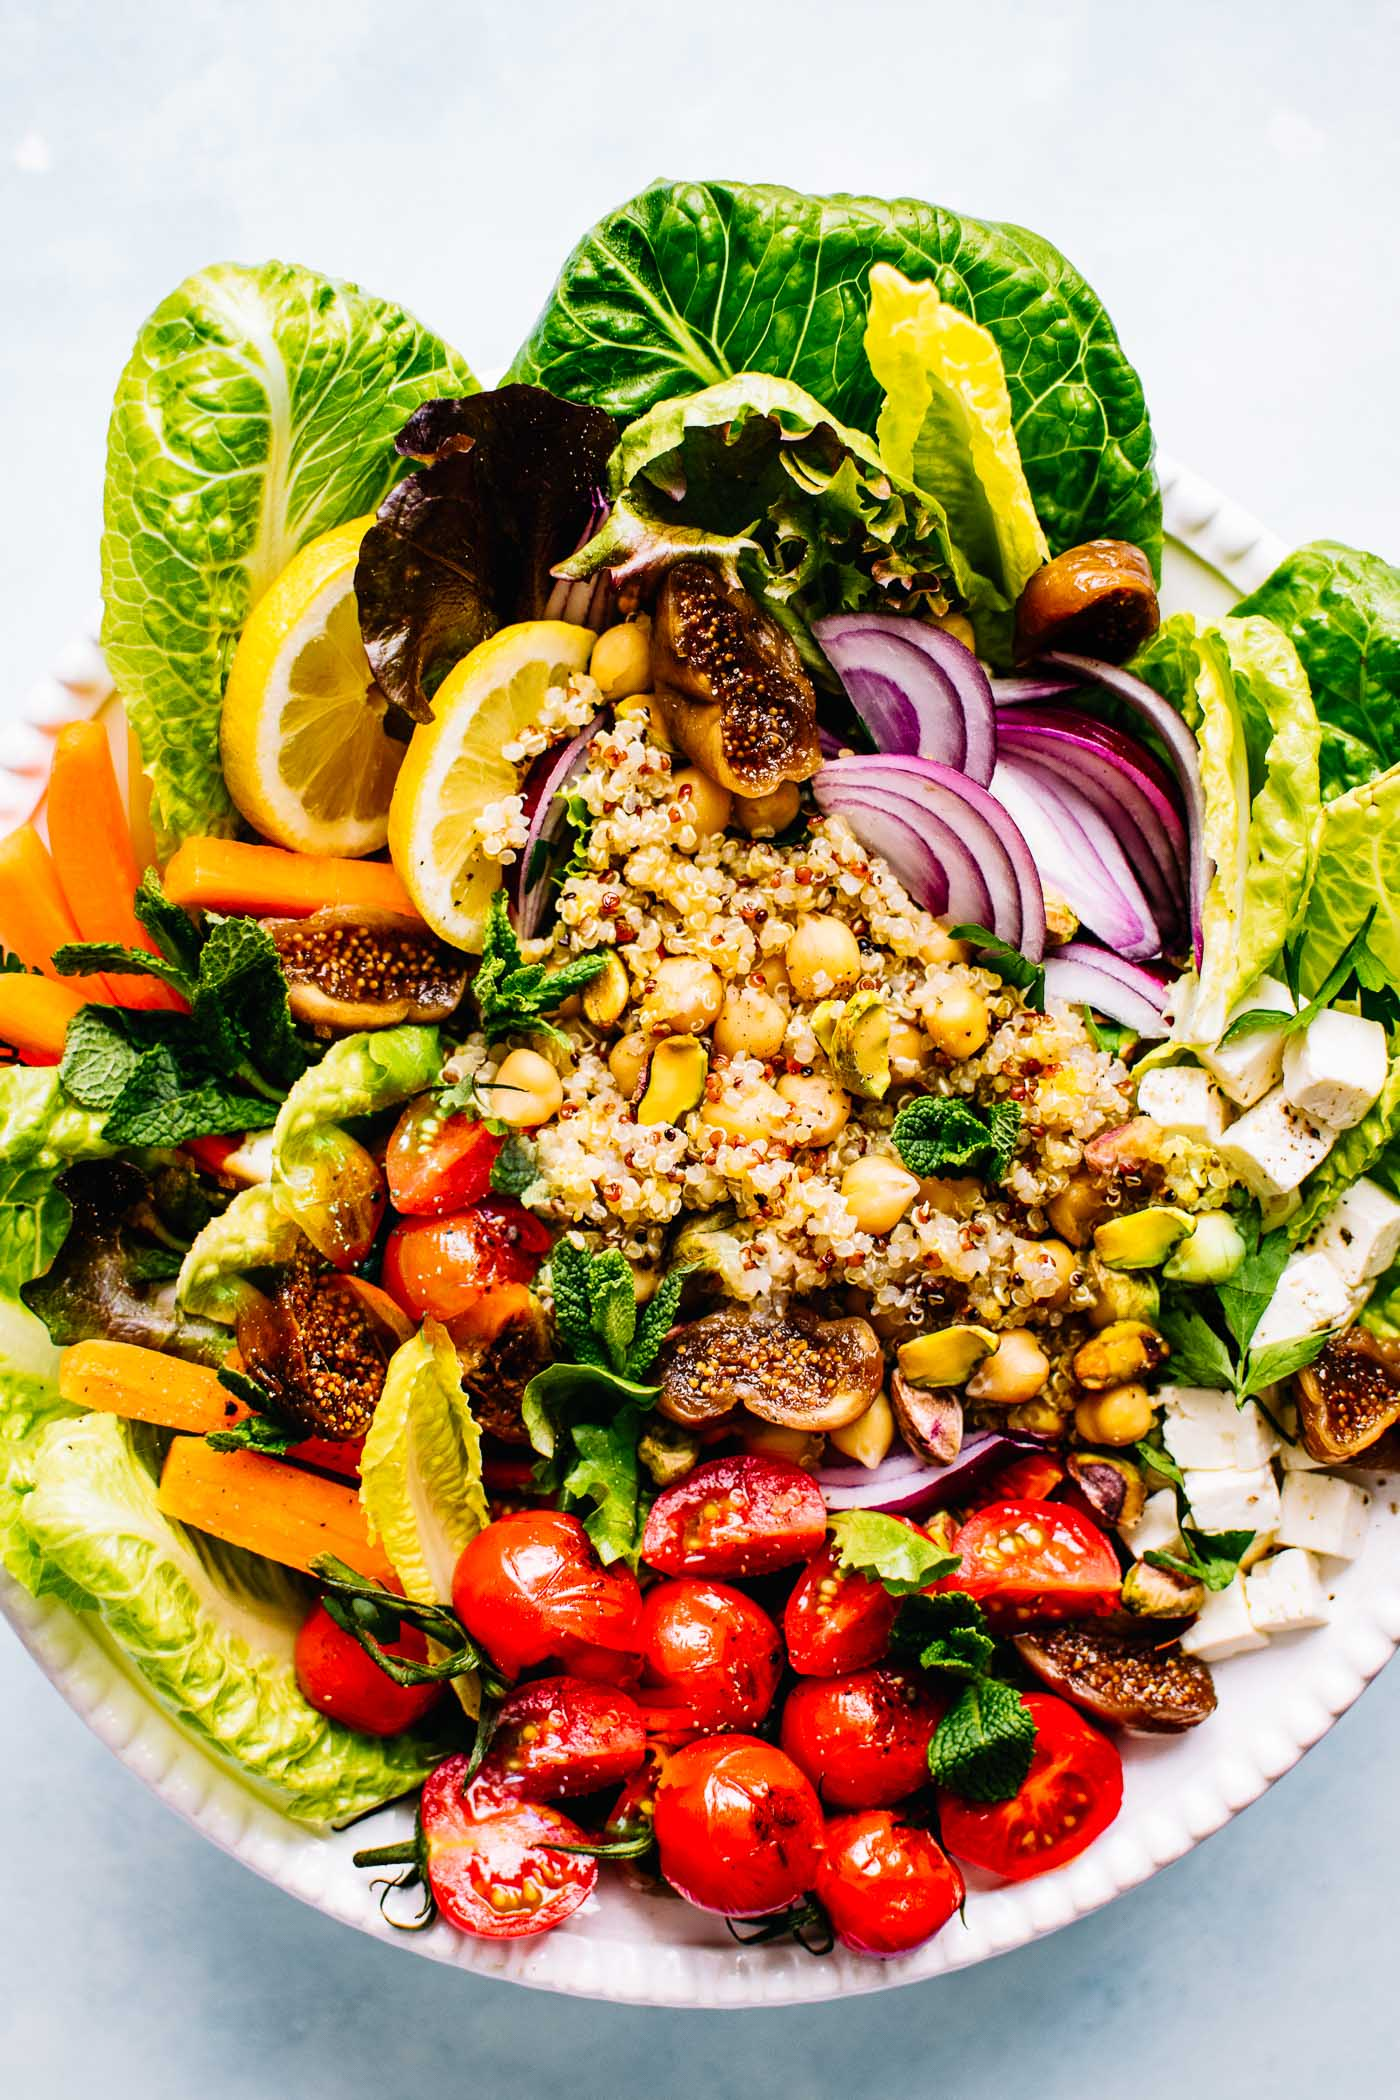 Moroccan Salad With Quinoa And Chickpeas